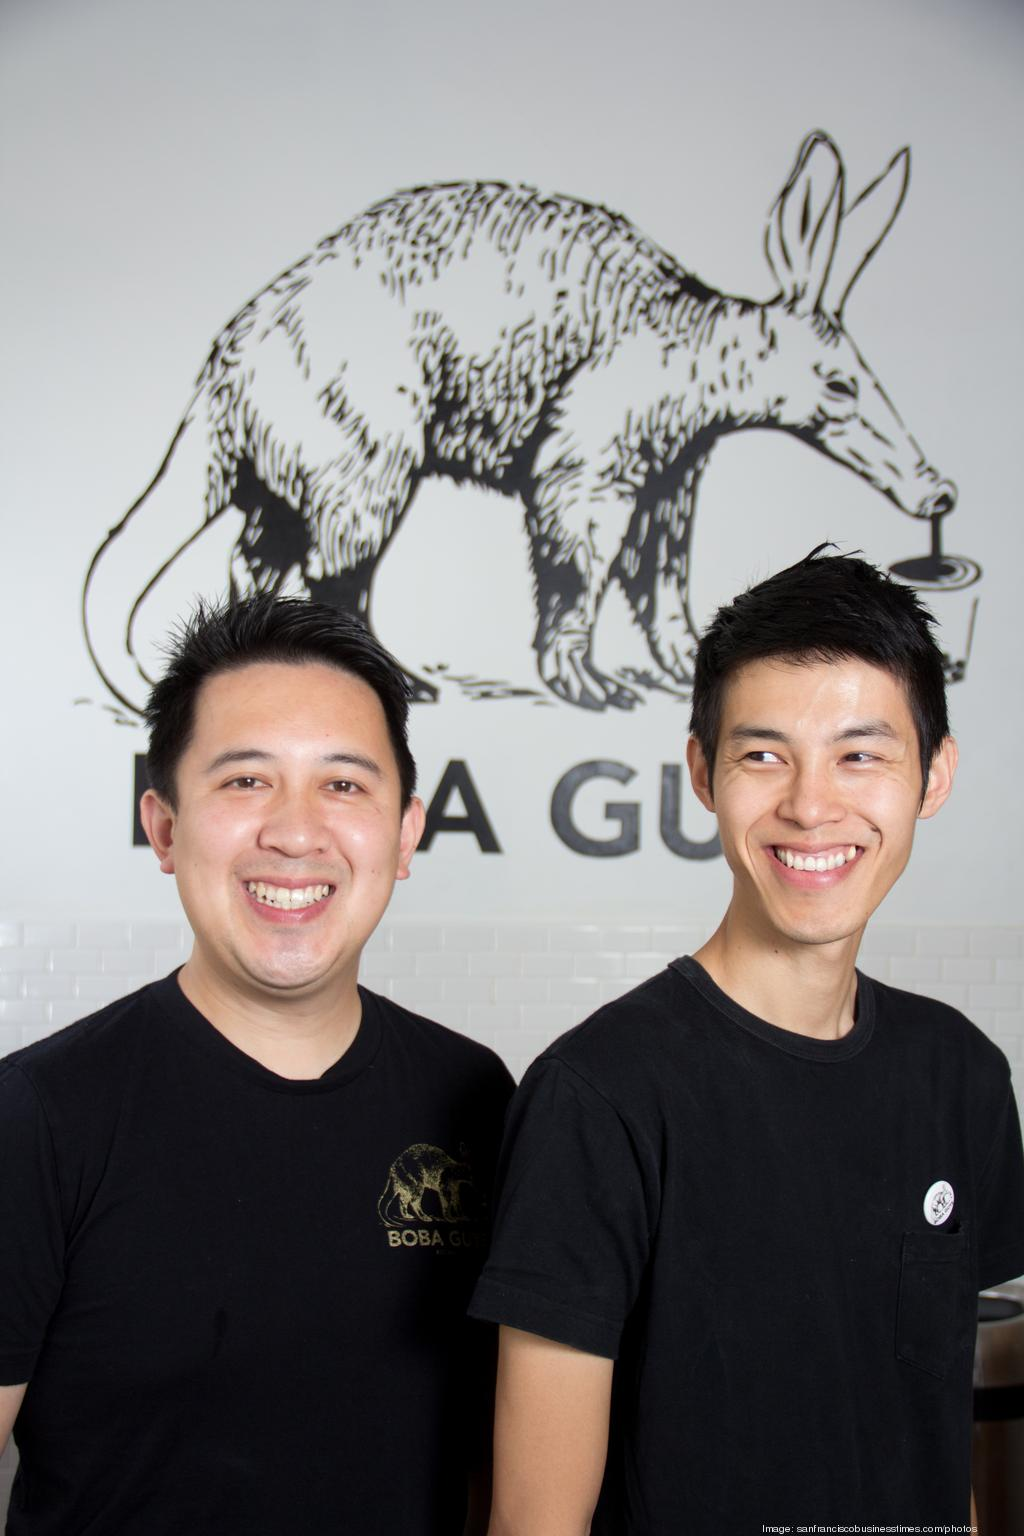 Andrew Chau and Bin Chen, Founders